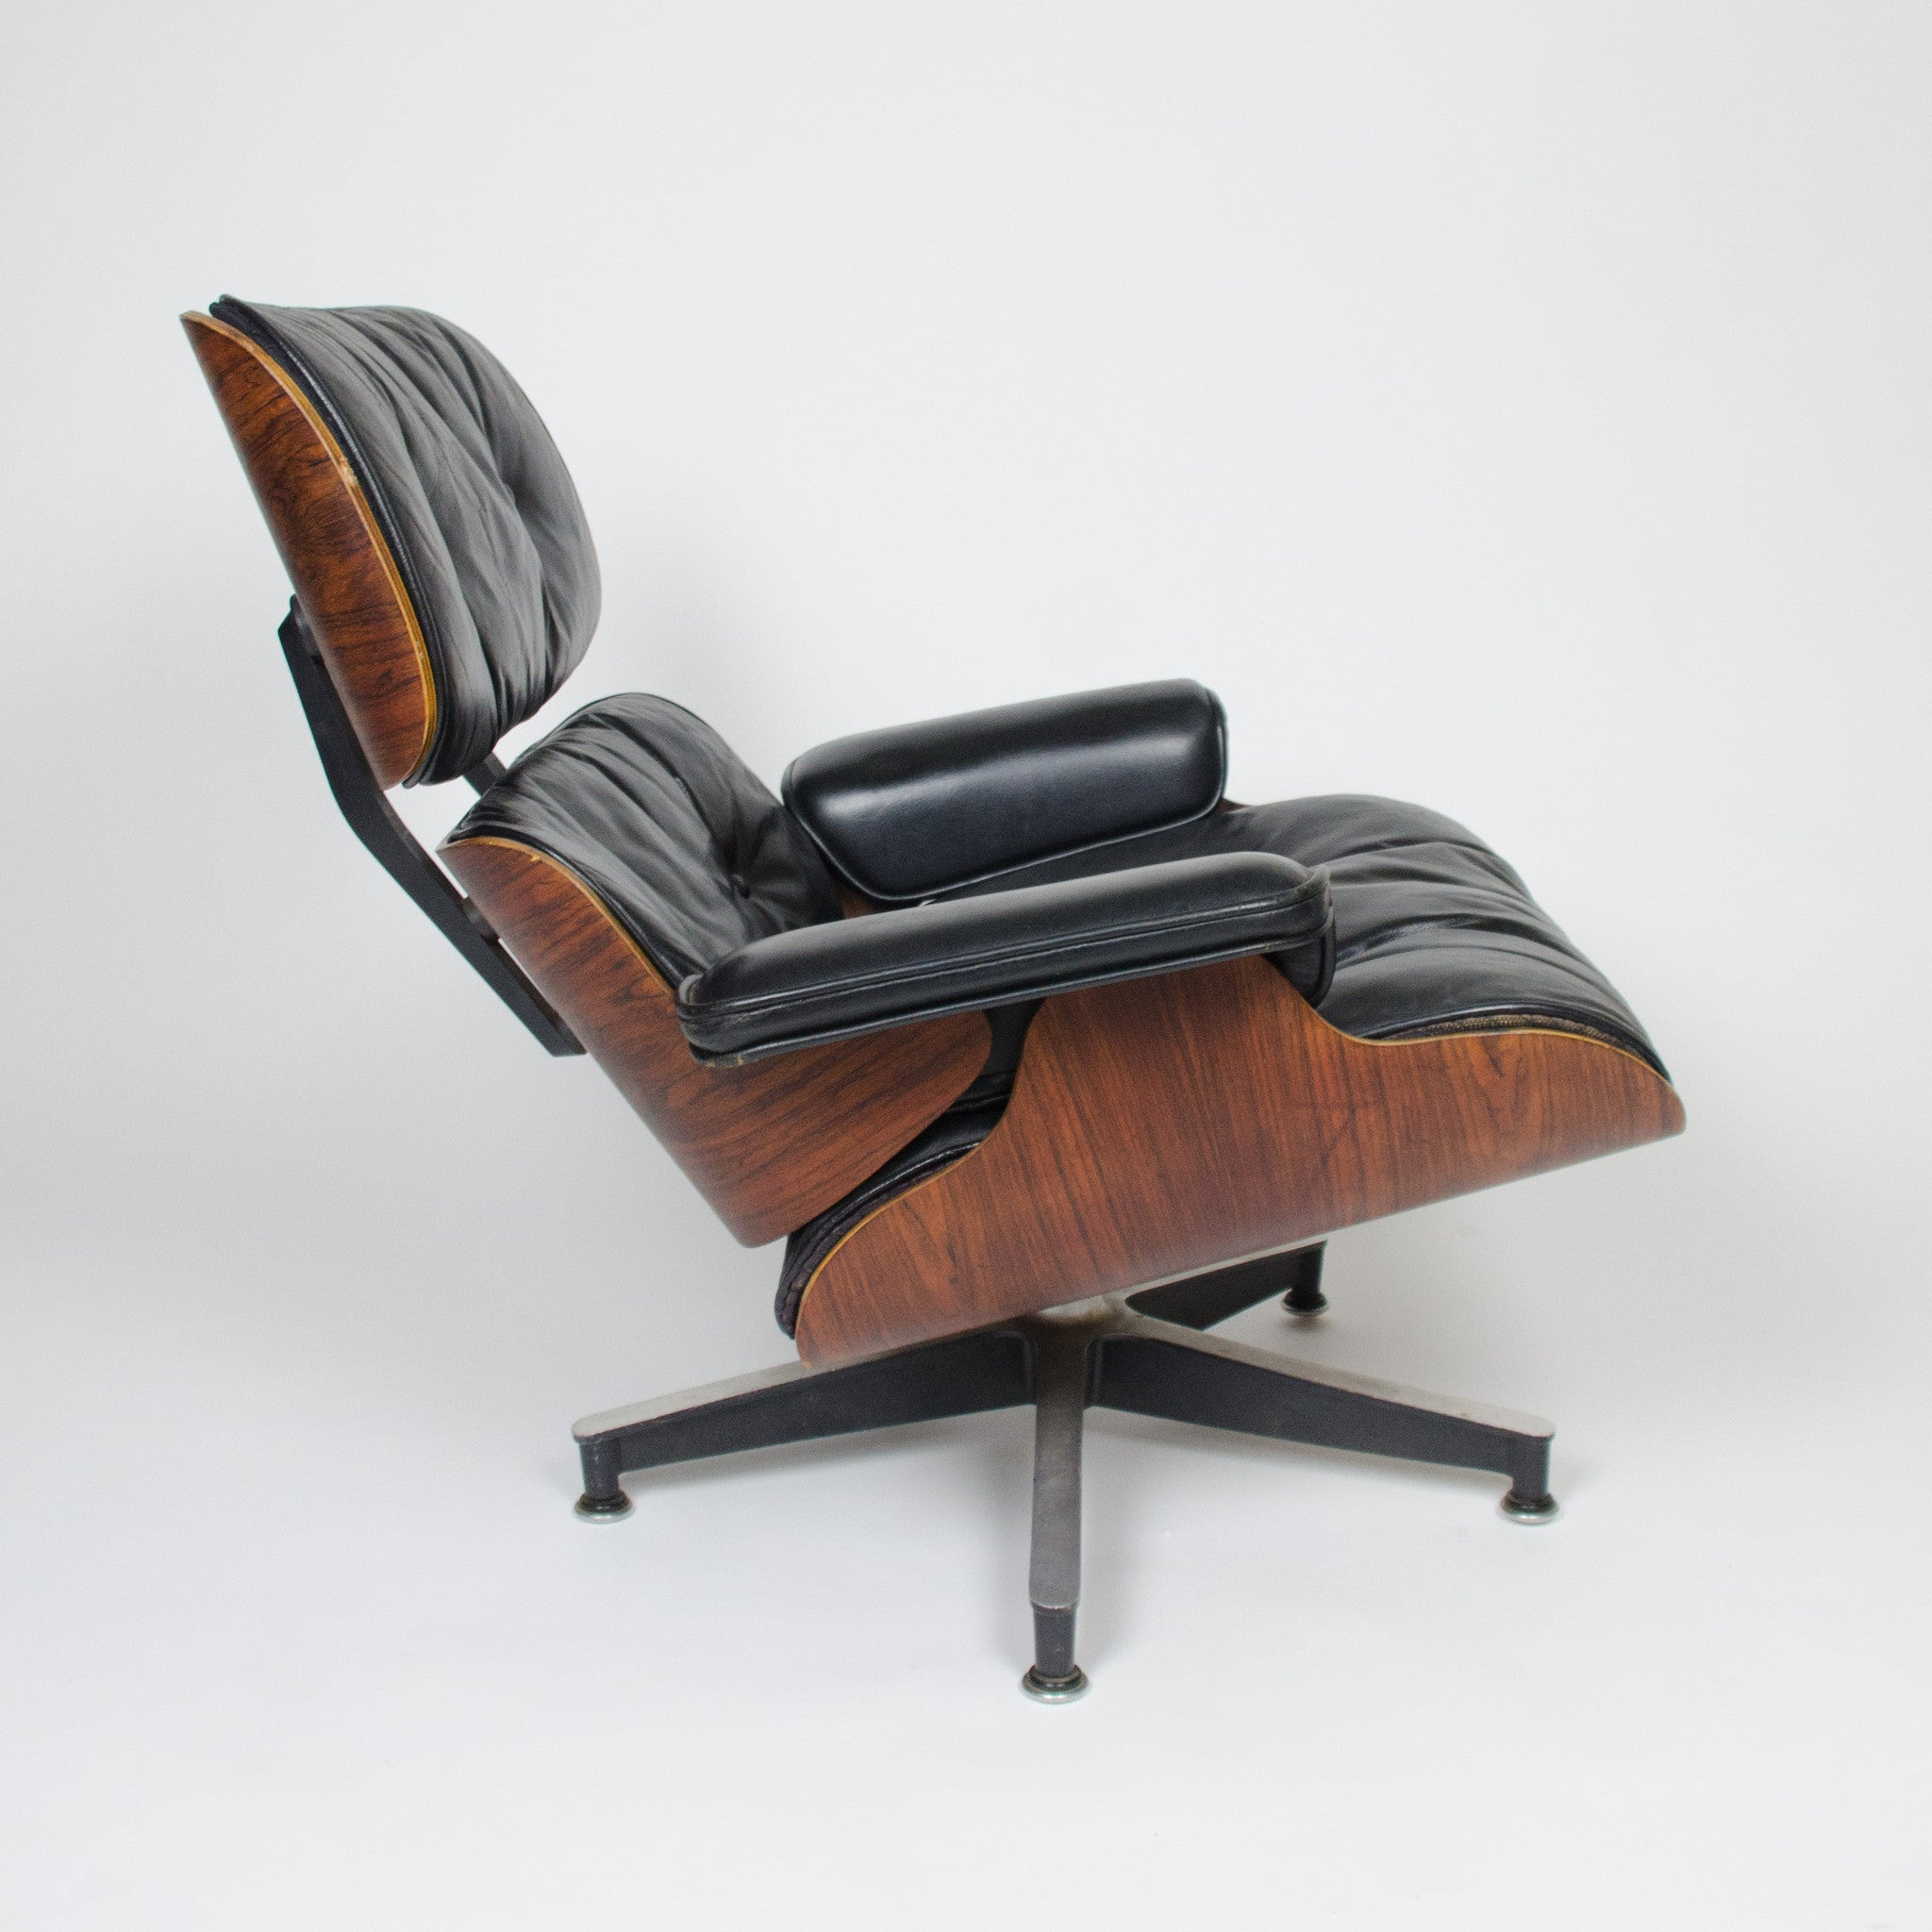 SOLD Holy Grail 1956 Herman Miller Eames Lounge Chair With Swivel Ottoman